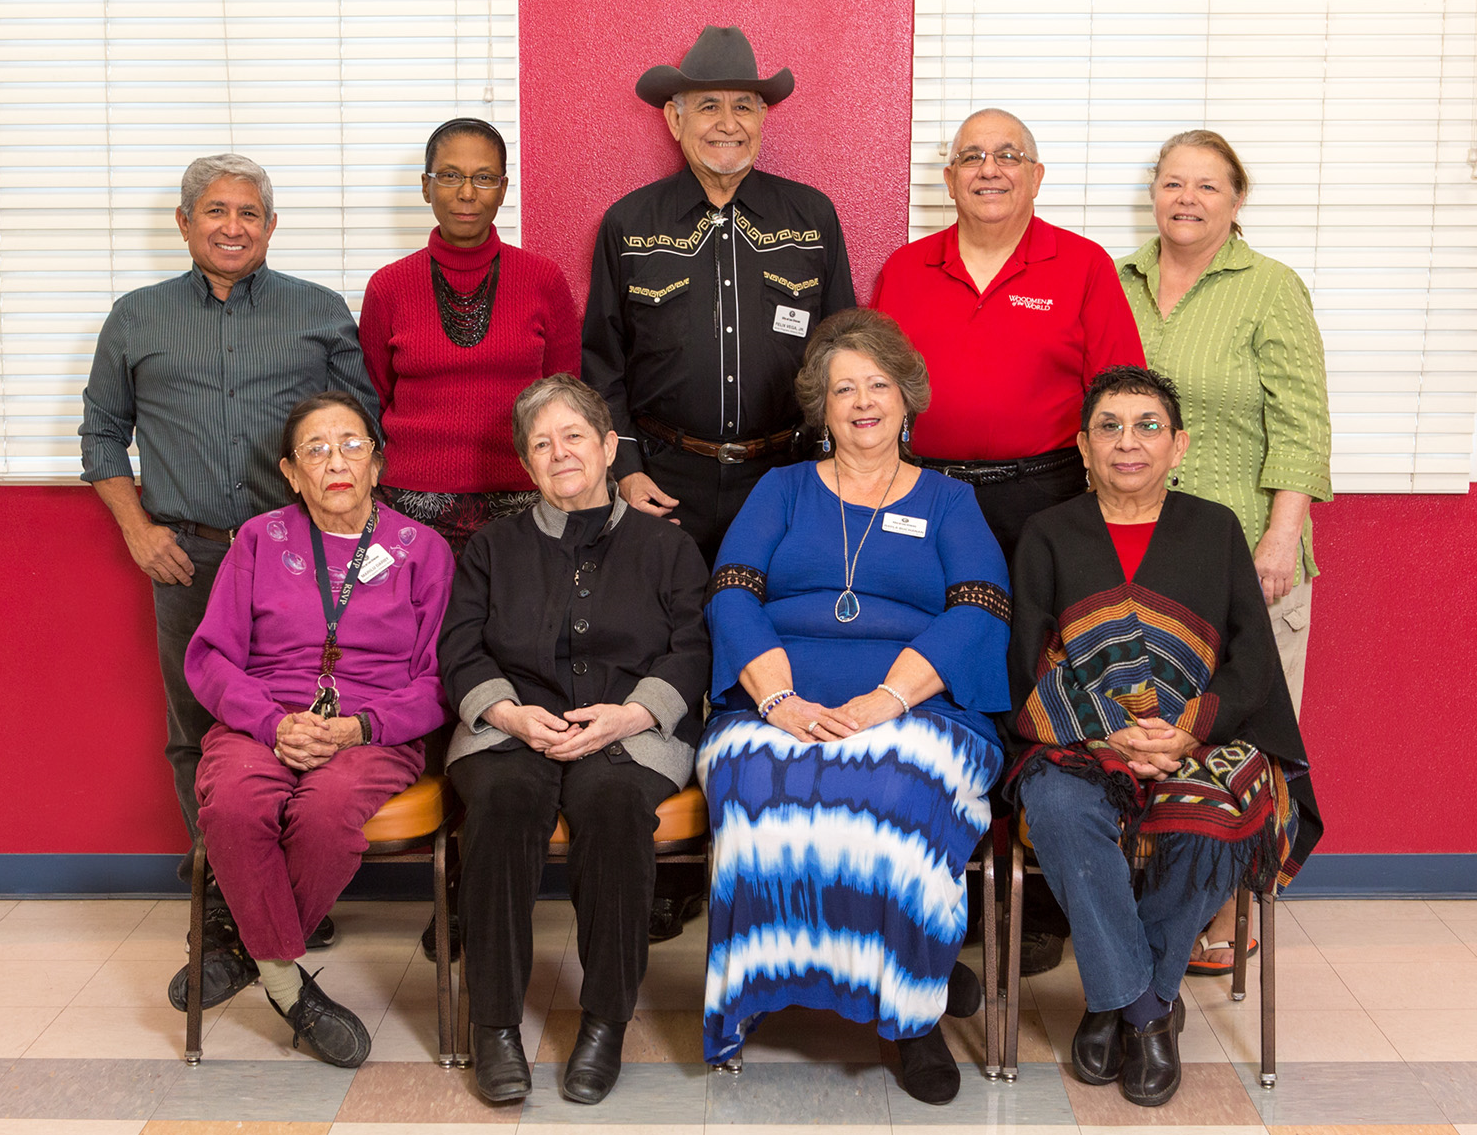 2016 Senior Programs Advisory Board Members